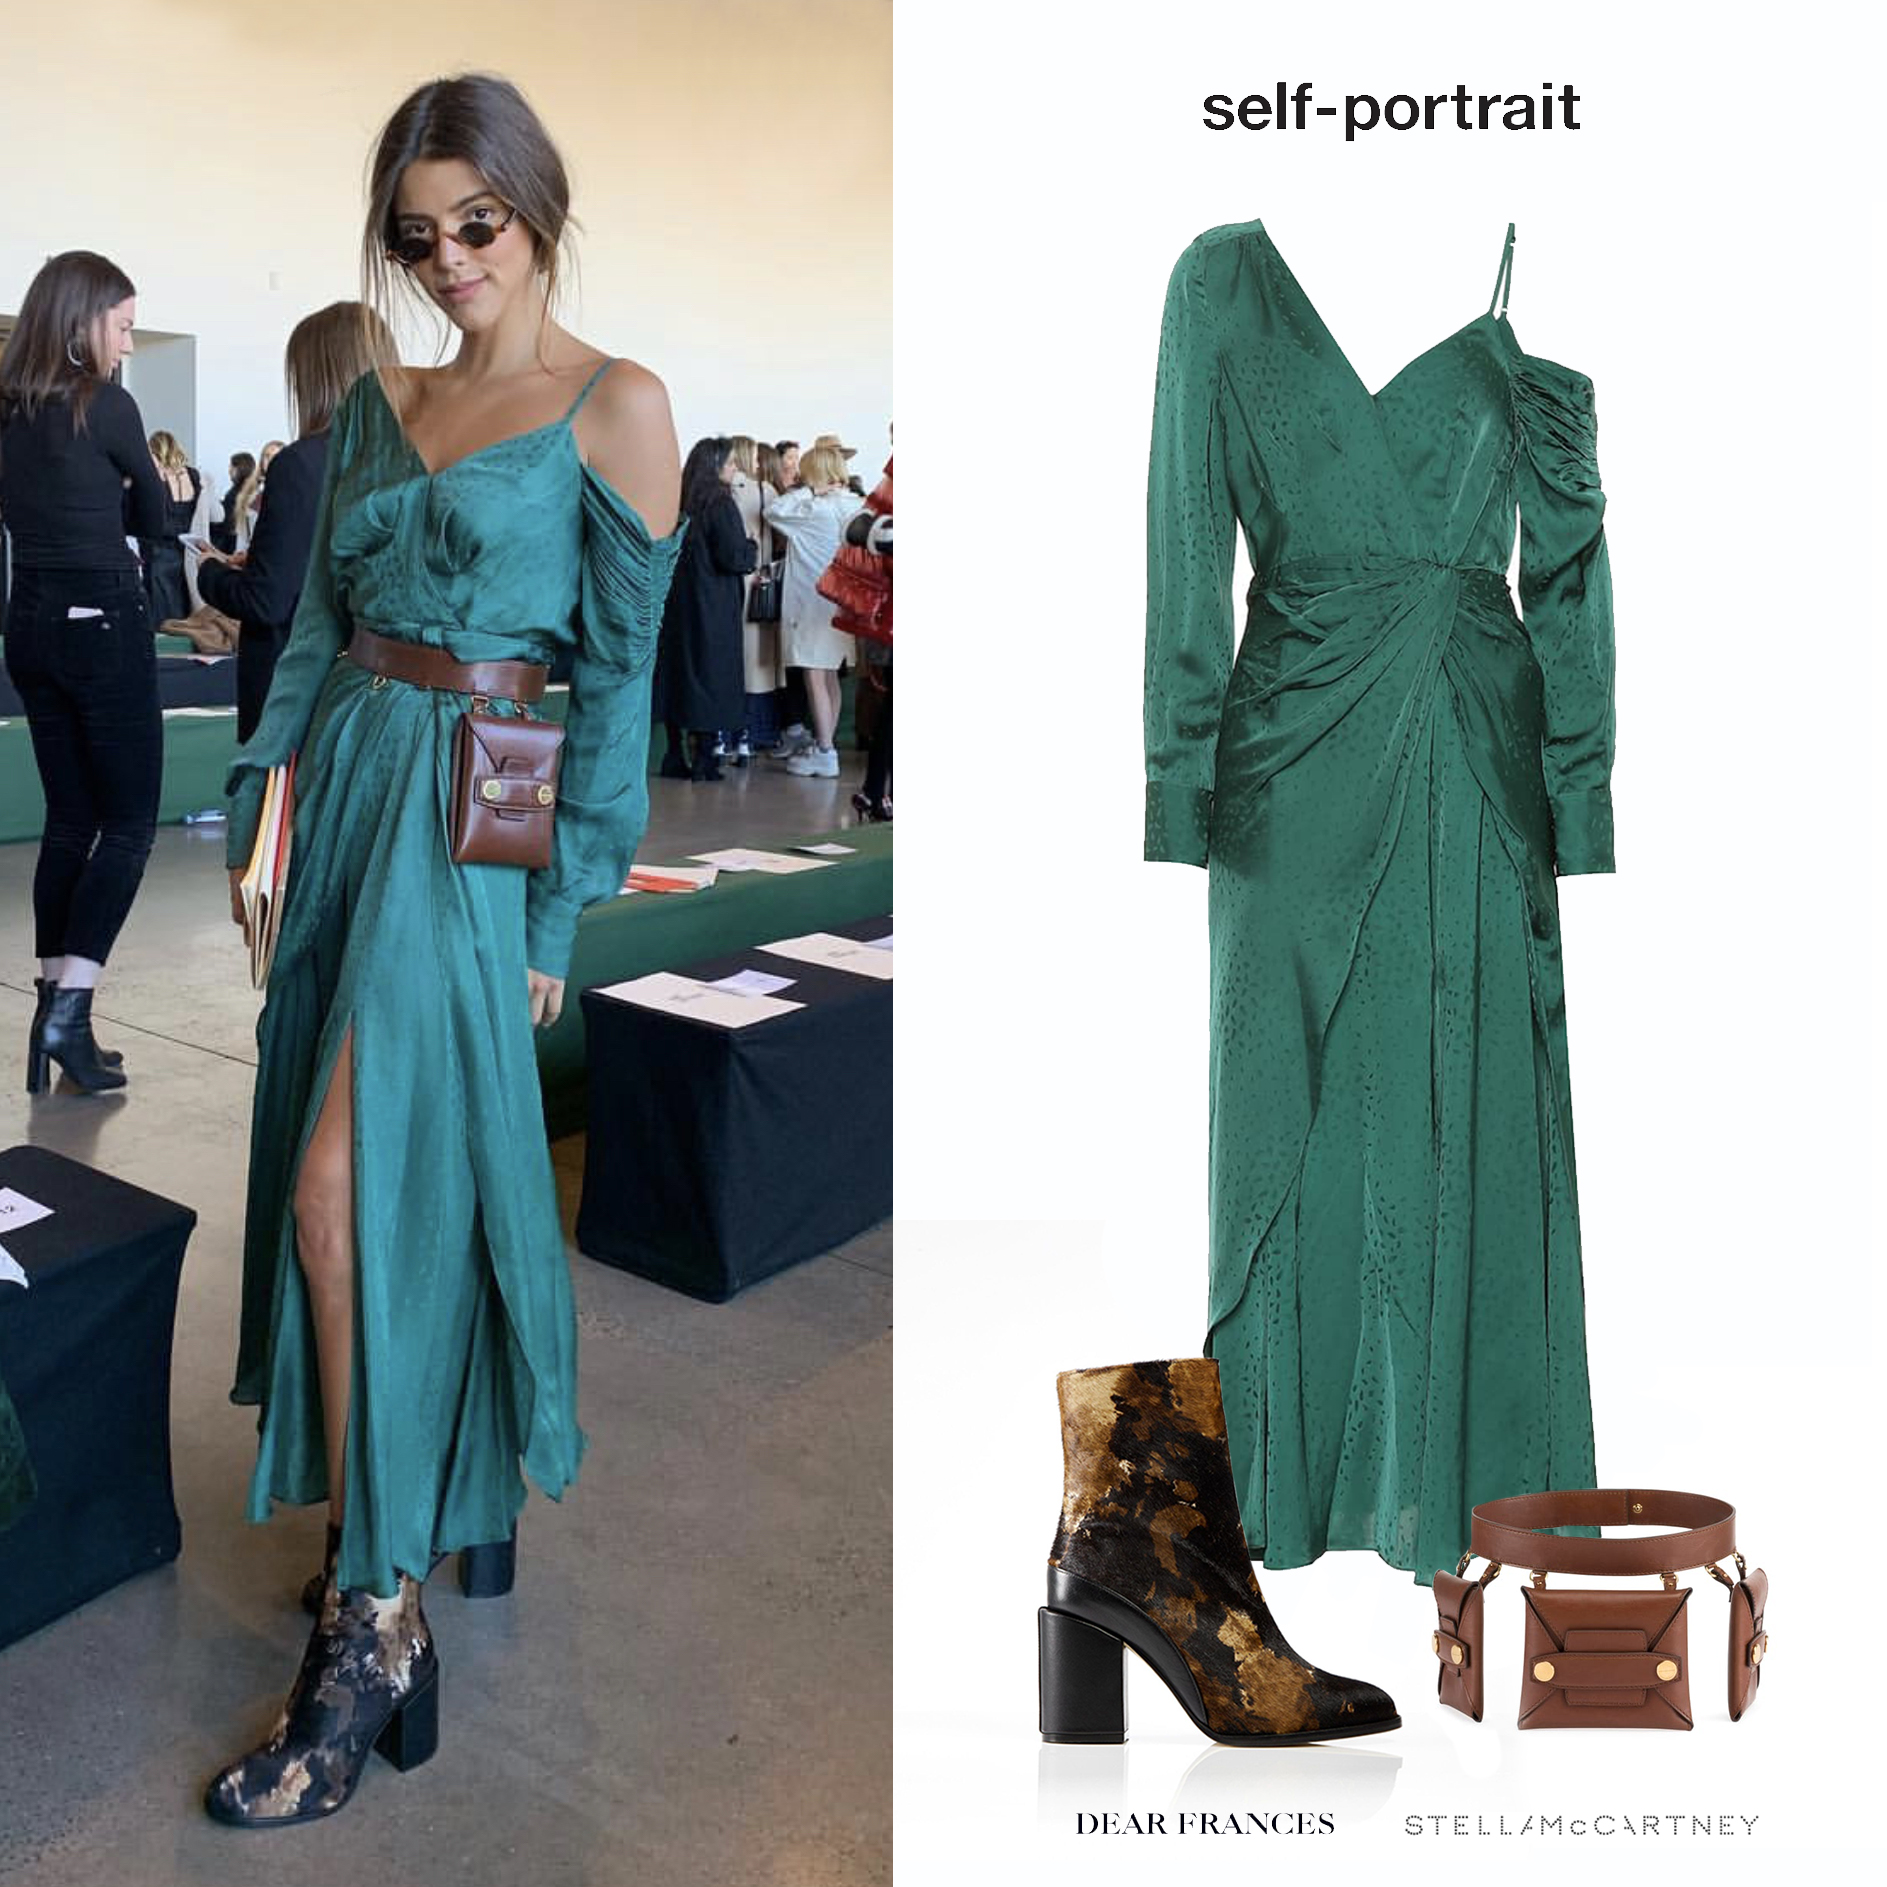 Calu_Rivero_Self_Portrait_Fall_2019_Show_New_York_Vestido_Verde_Aymetric_Green_Dress_Botas_Dear_Frances_Pony_Spirit_Boot_Stella_McCartney_Trio_Belt_Bag.jpg